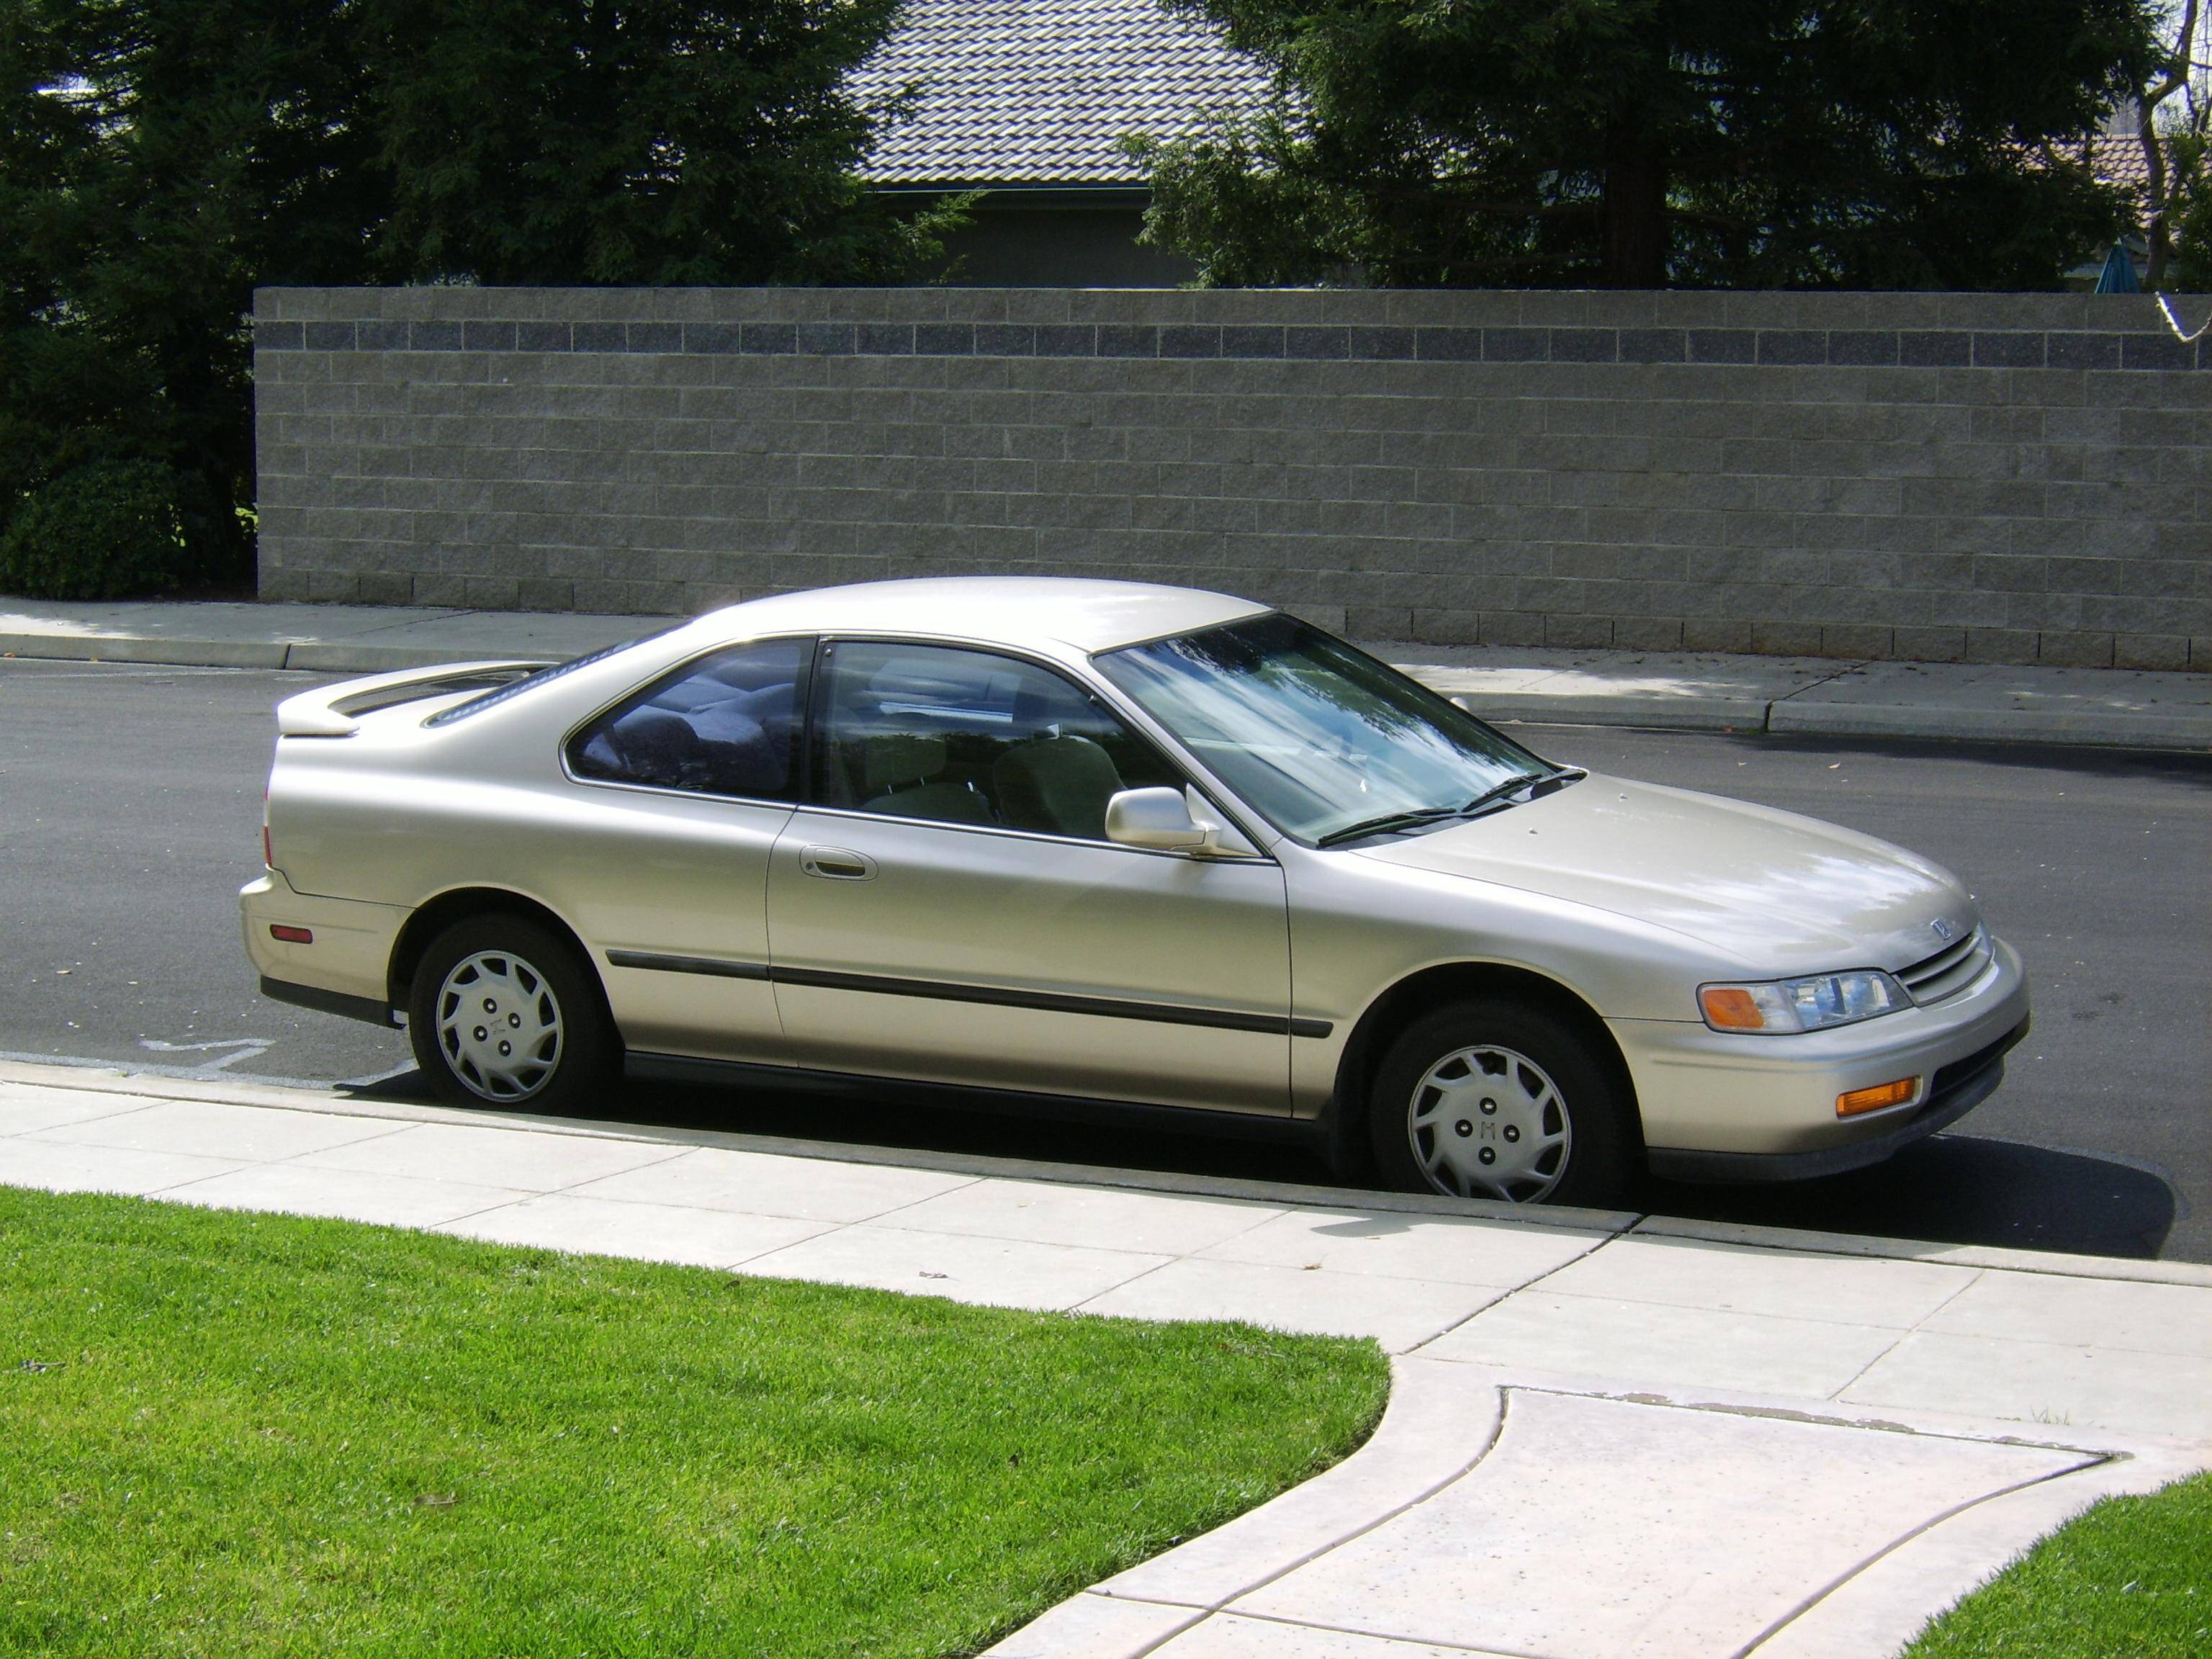 Honda Motor Co.'s 1994 Accord was the most-frequently stolen car in the U.S. in 2010 for the third straight year as weak security systems and a demand for parts drew thieves, the National Insurance Crime Bureau said.